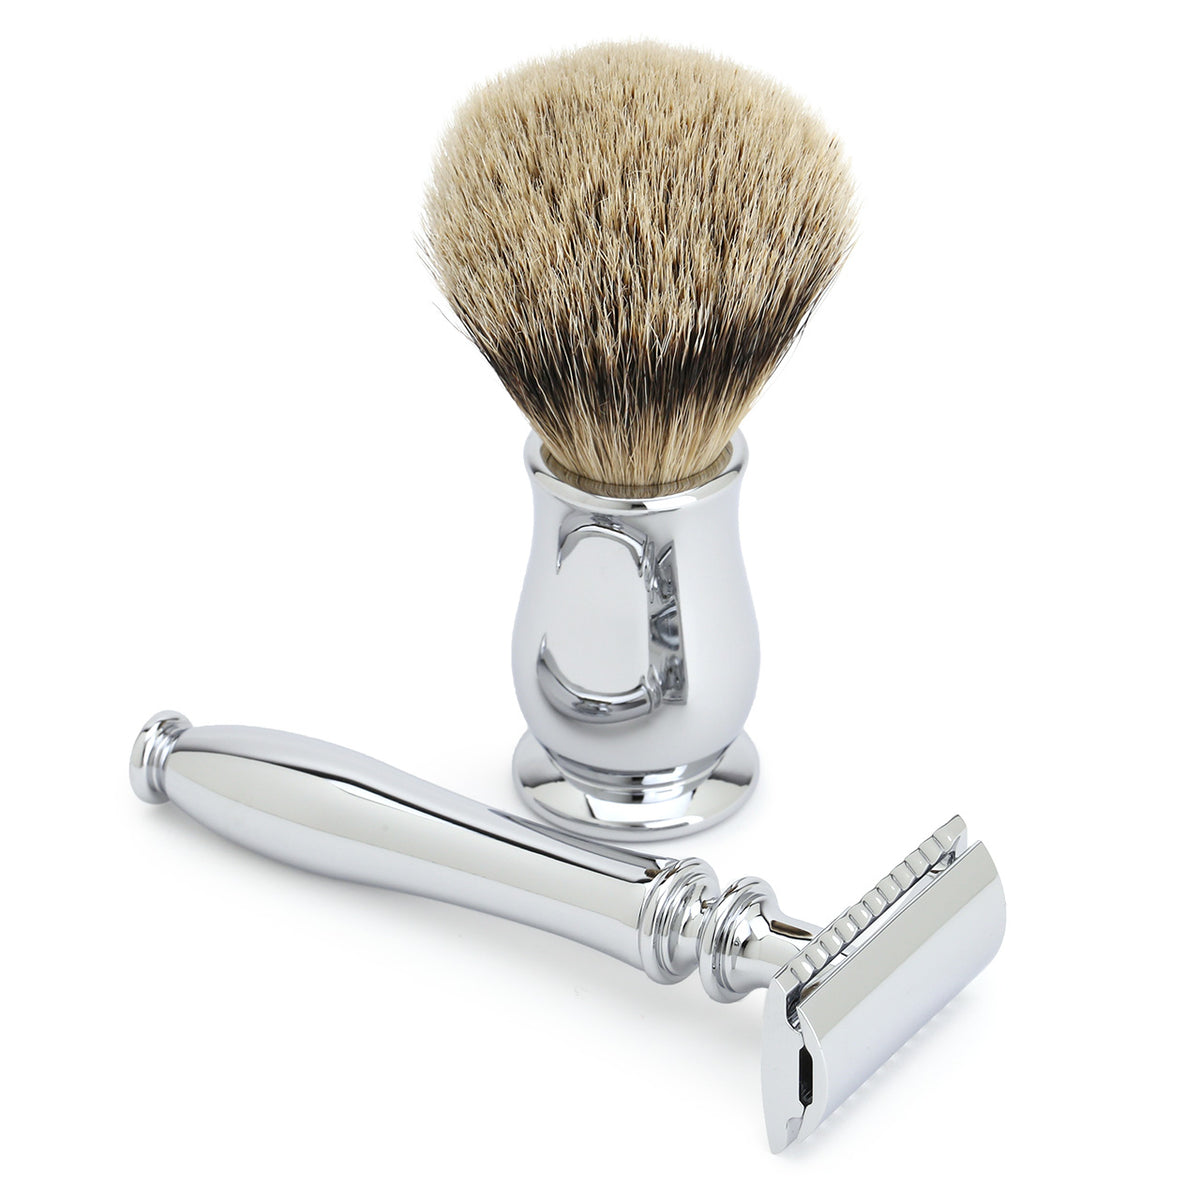 Edwin Jagger Chatsworth smooth chrome razor and brush